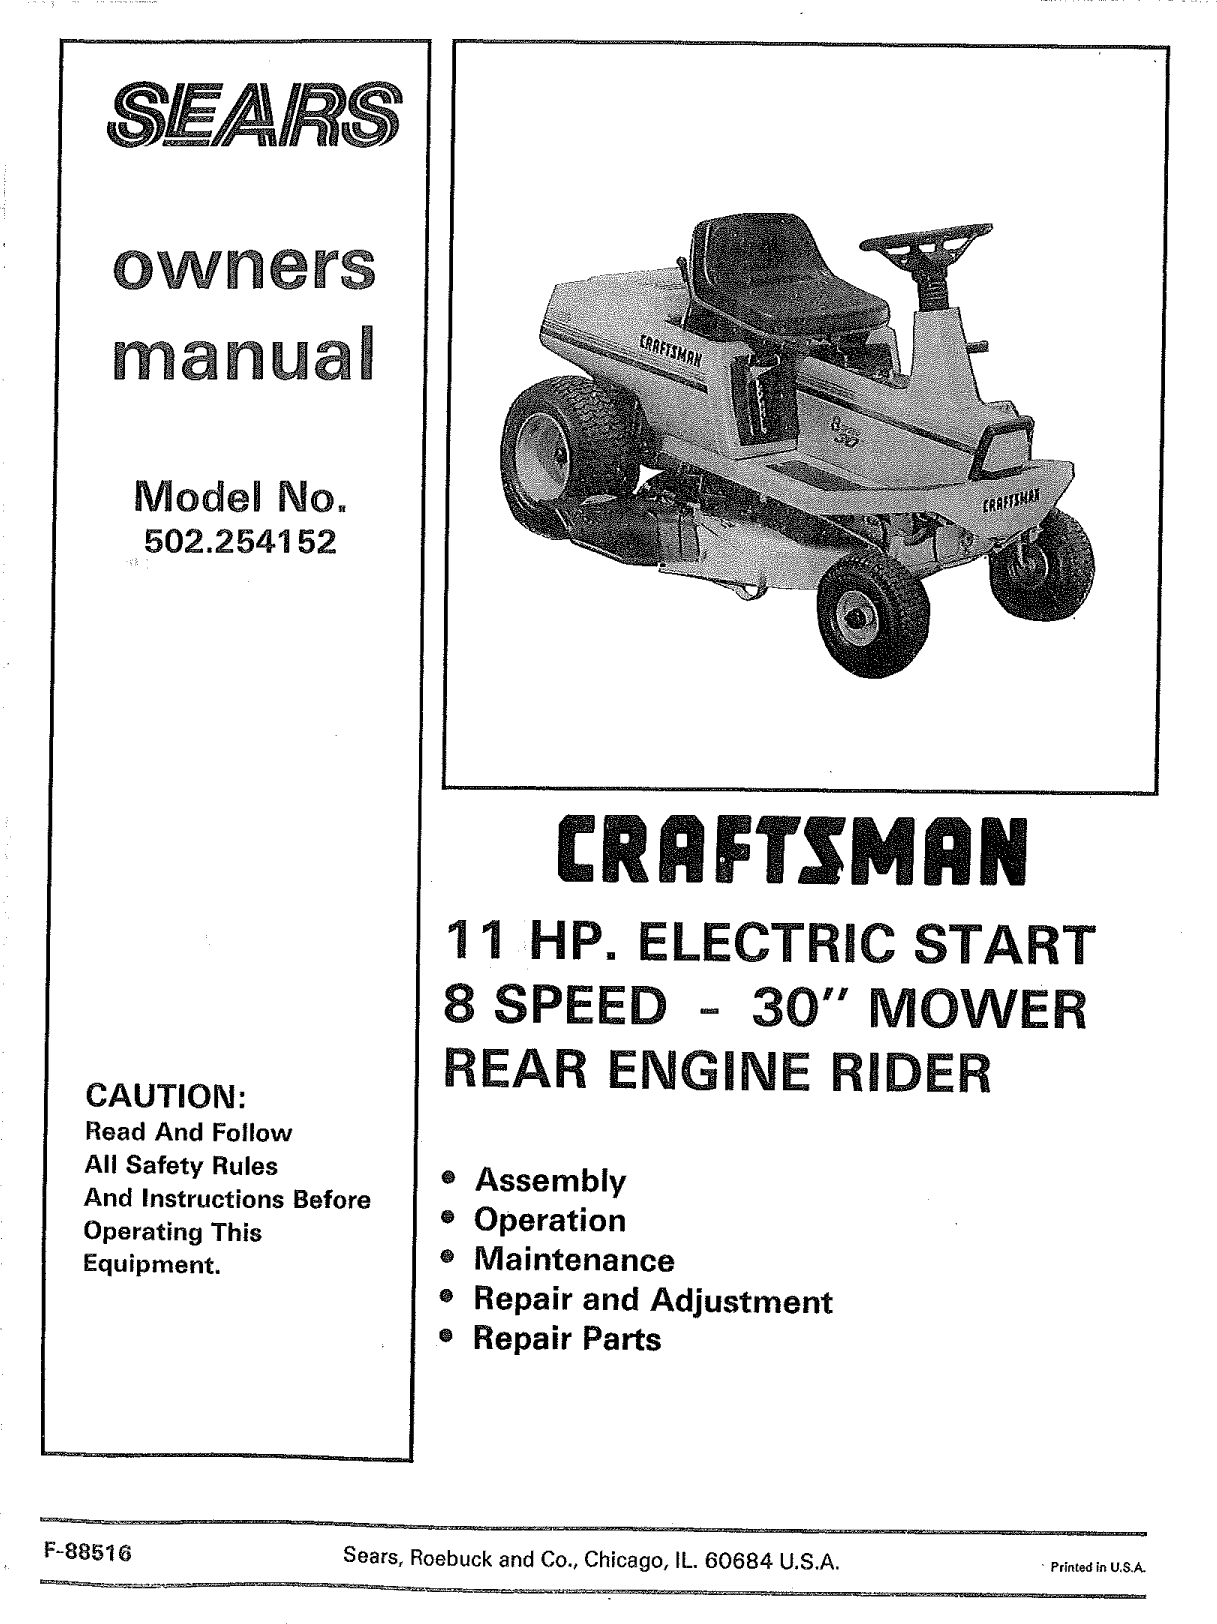 Craftsman 502254152 User Manual 11 HP REAR ENGINE RIDER Manuals And Guides  L1004284